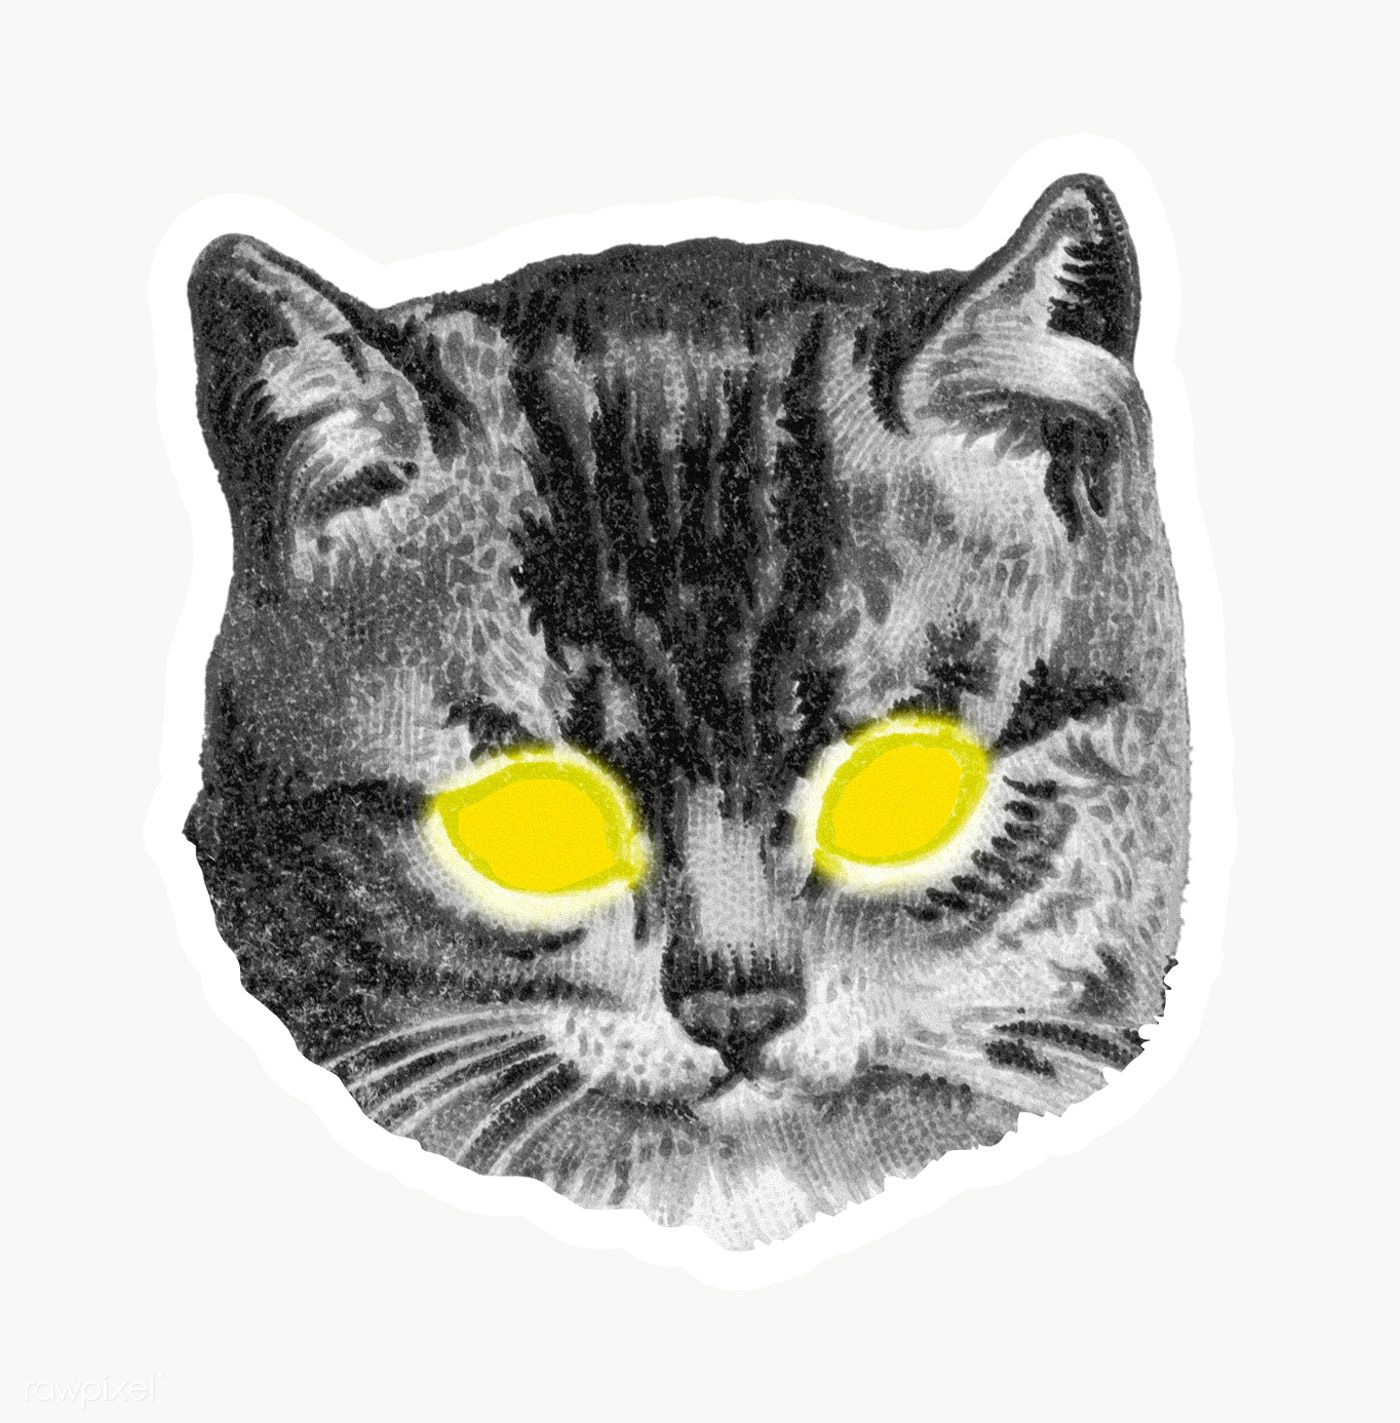 Cat With Yellow Laser Eyes Sticker Transparent Png Free Image By Rawpixel Com Eyeeyeview In 2020 Cat Furry Lion Illustration Animal Clipart